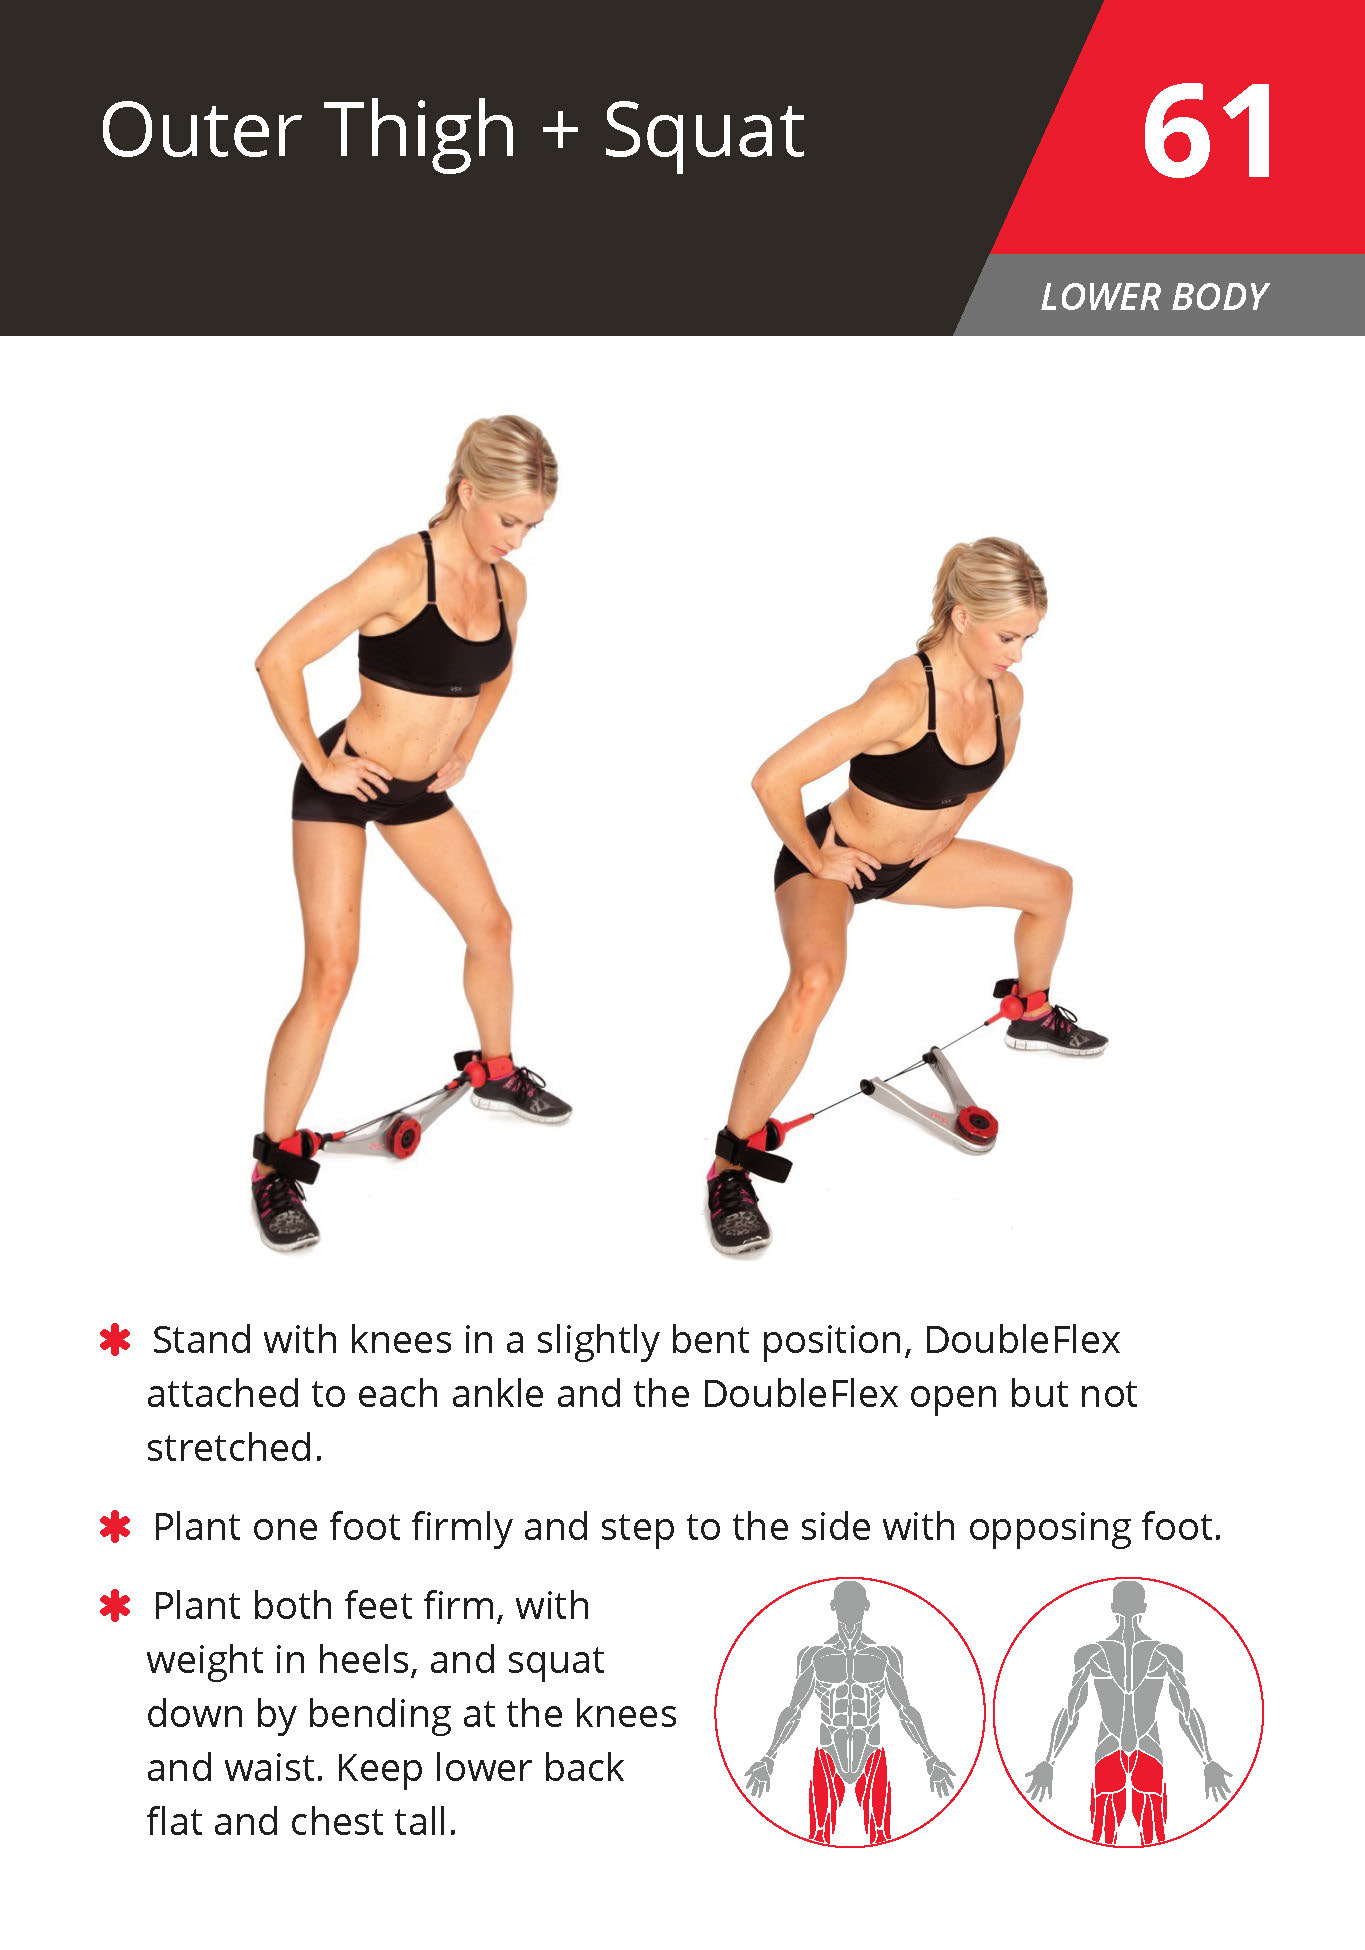 61 Outer Thigh + Squat